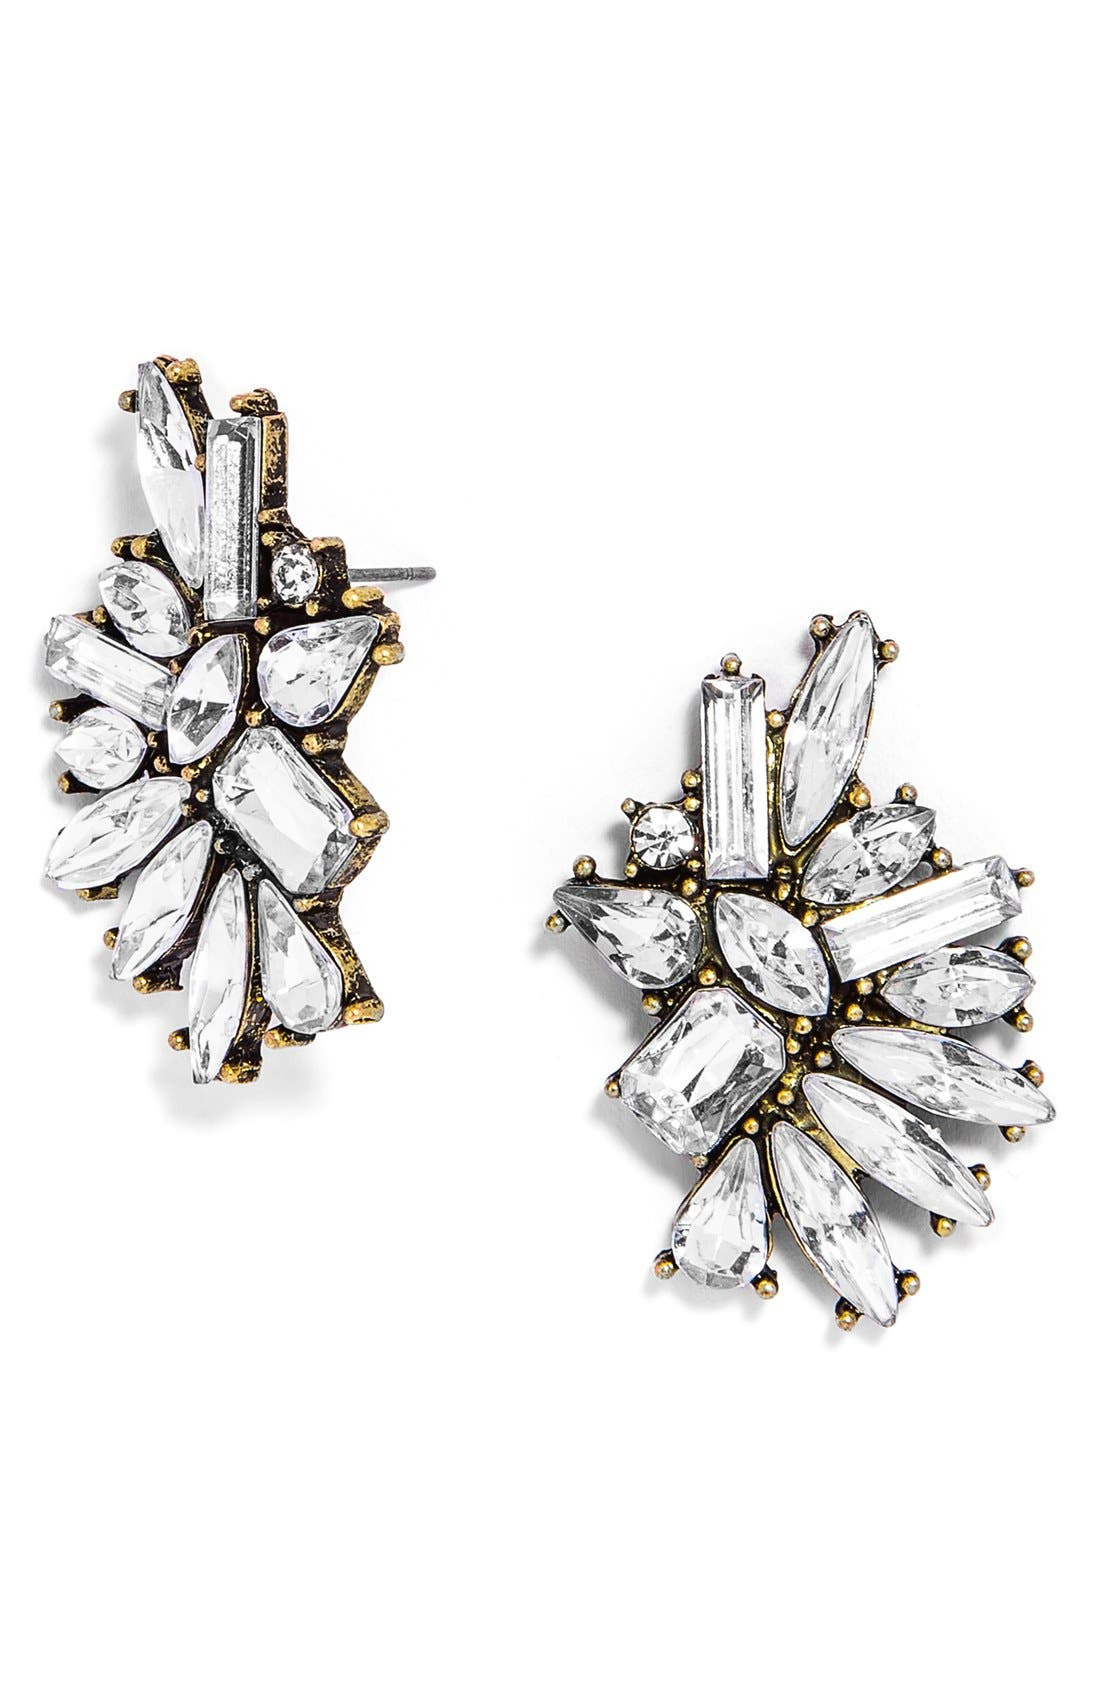 'Crystal Dolores' Statement Stud Earrings,                             Main thumbnail 1, color,                             Antique Gold/ Clear